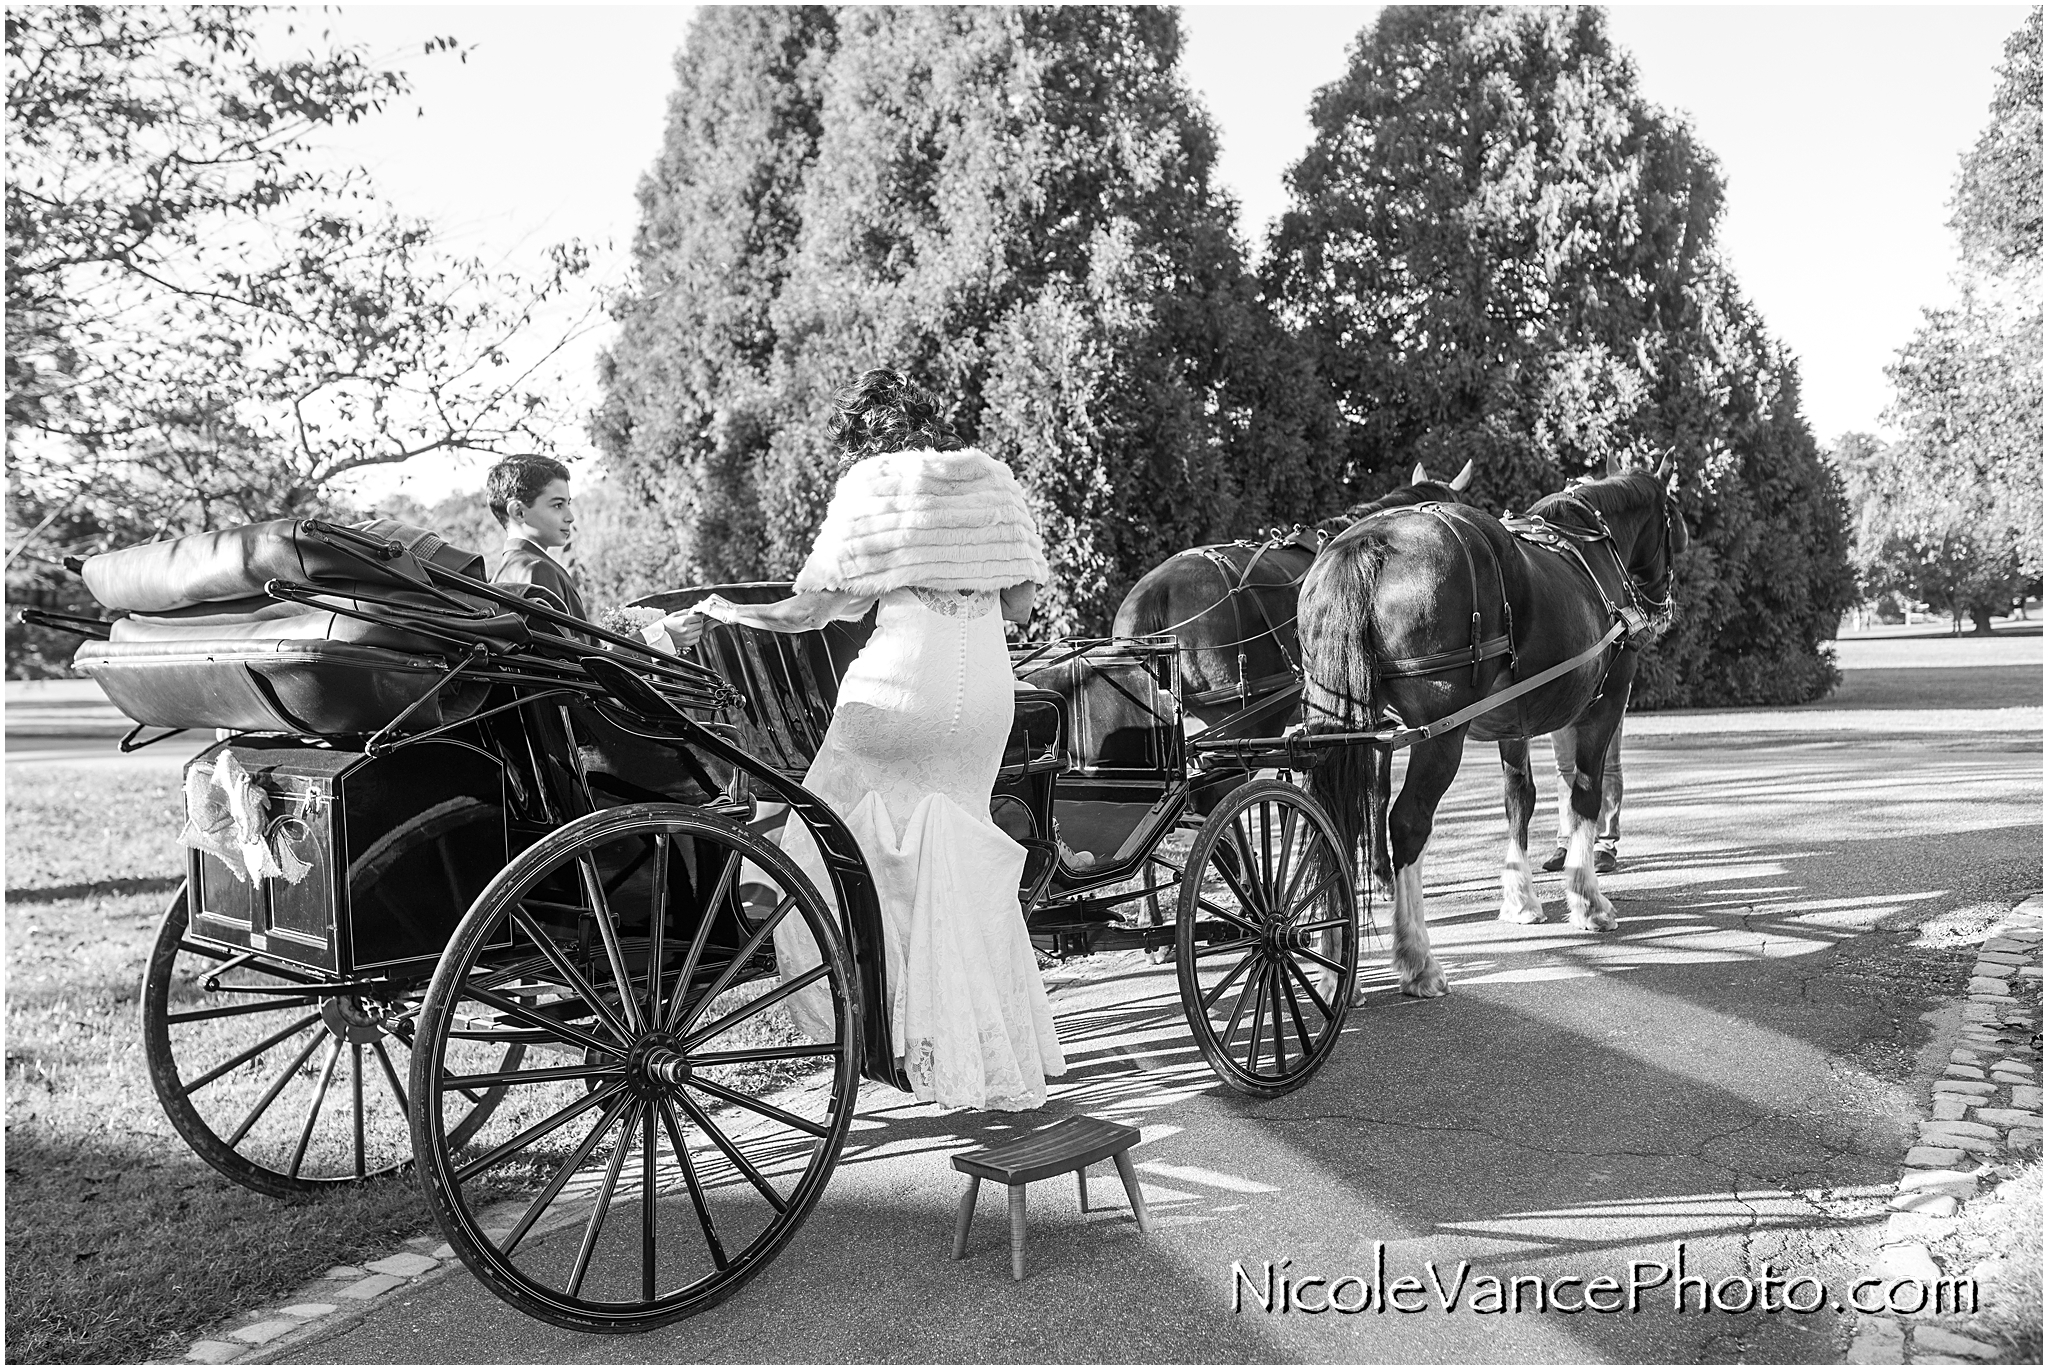 The bride boards her horse drawn carriage at Maymont Park which will take her to the ceremony site across the park.